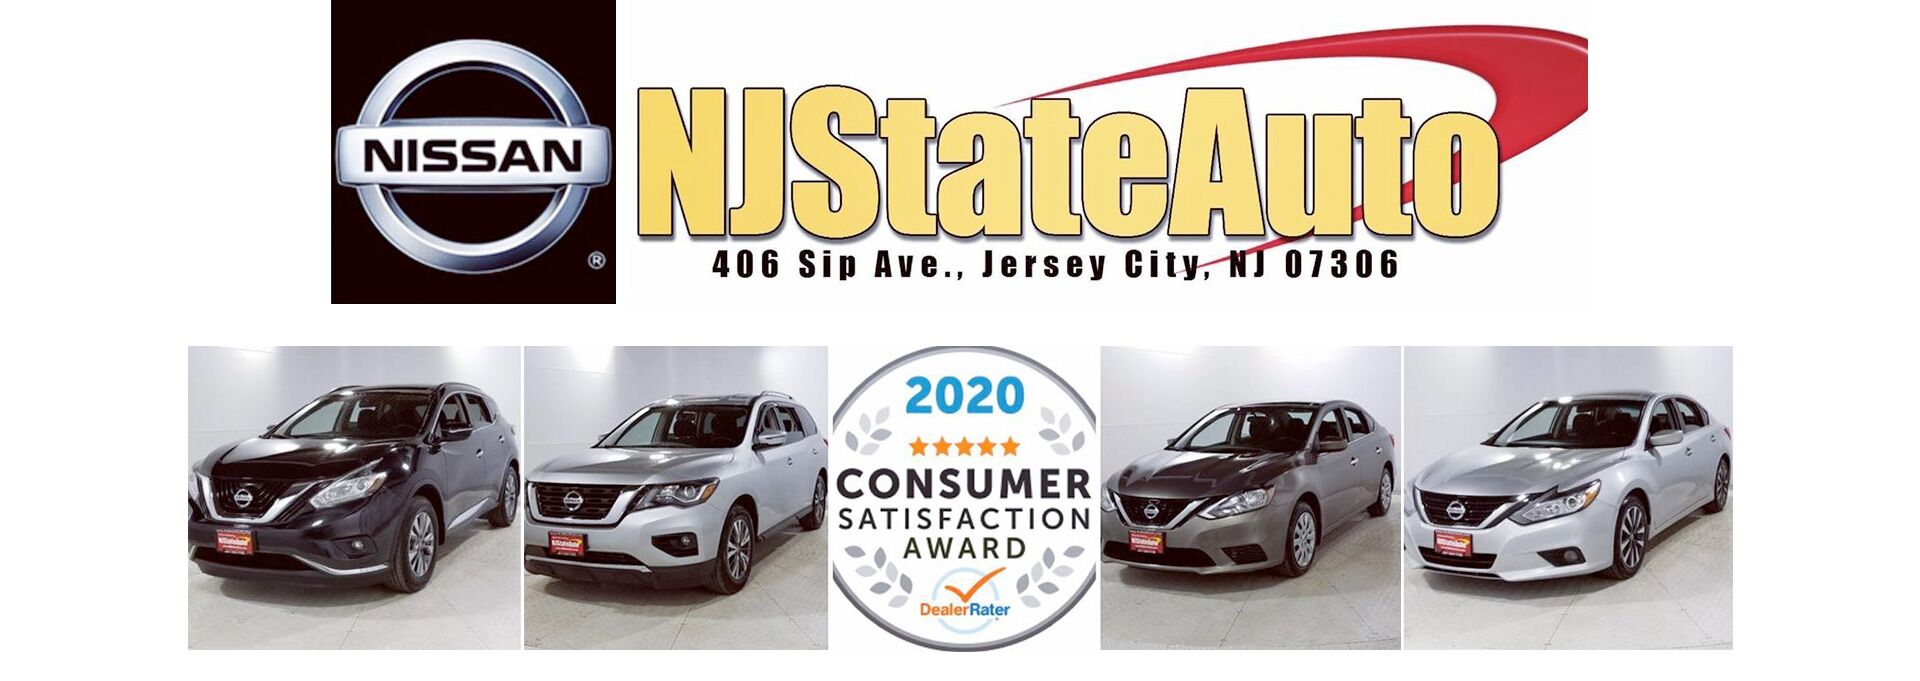 Nissan Cars for Sale